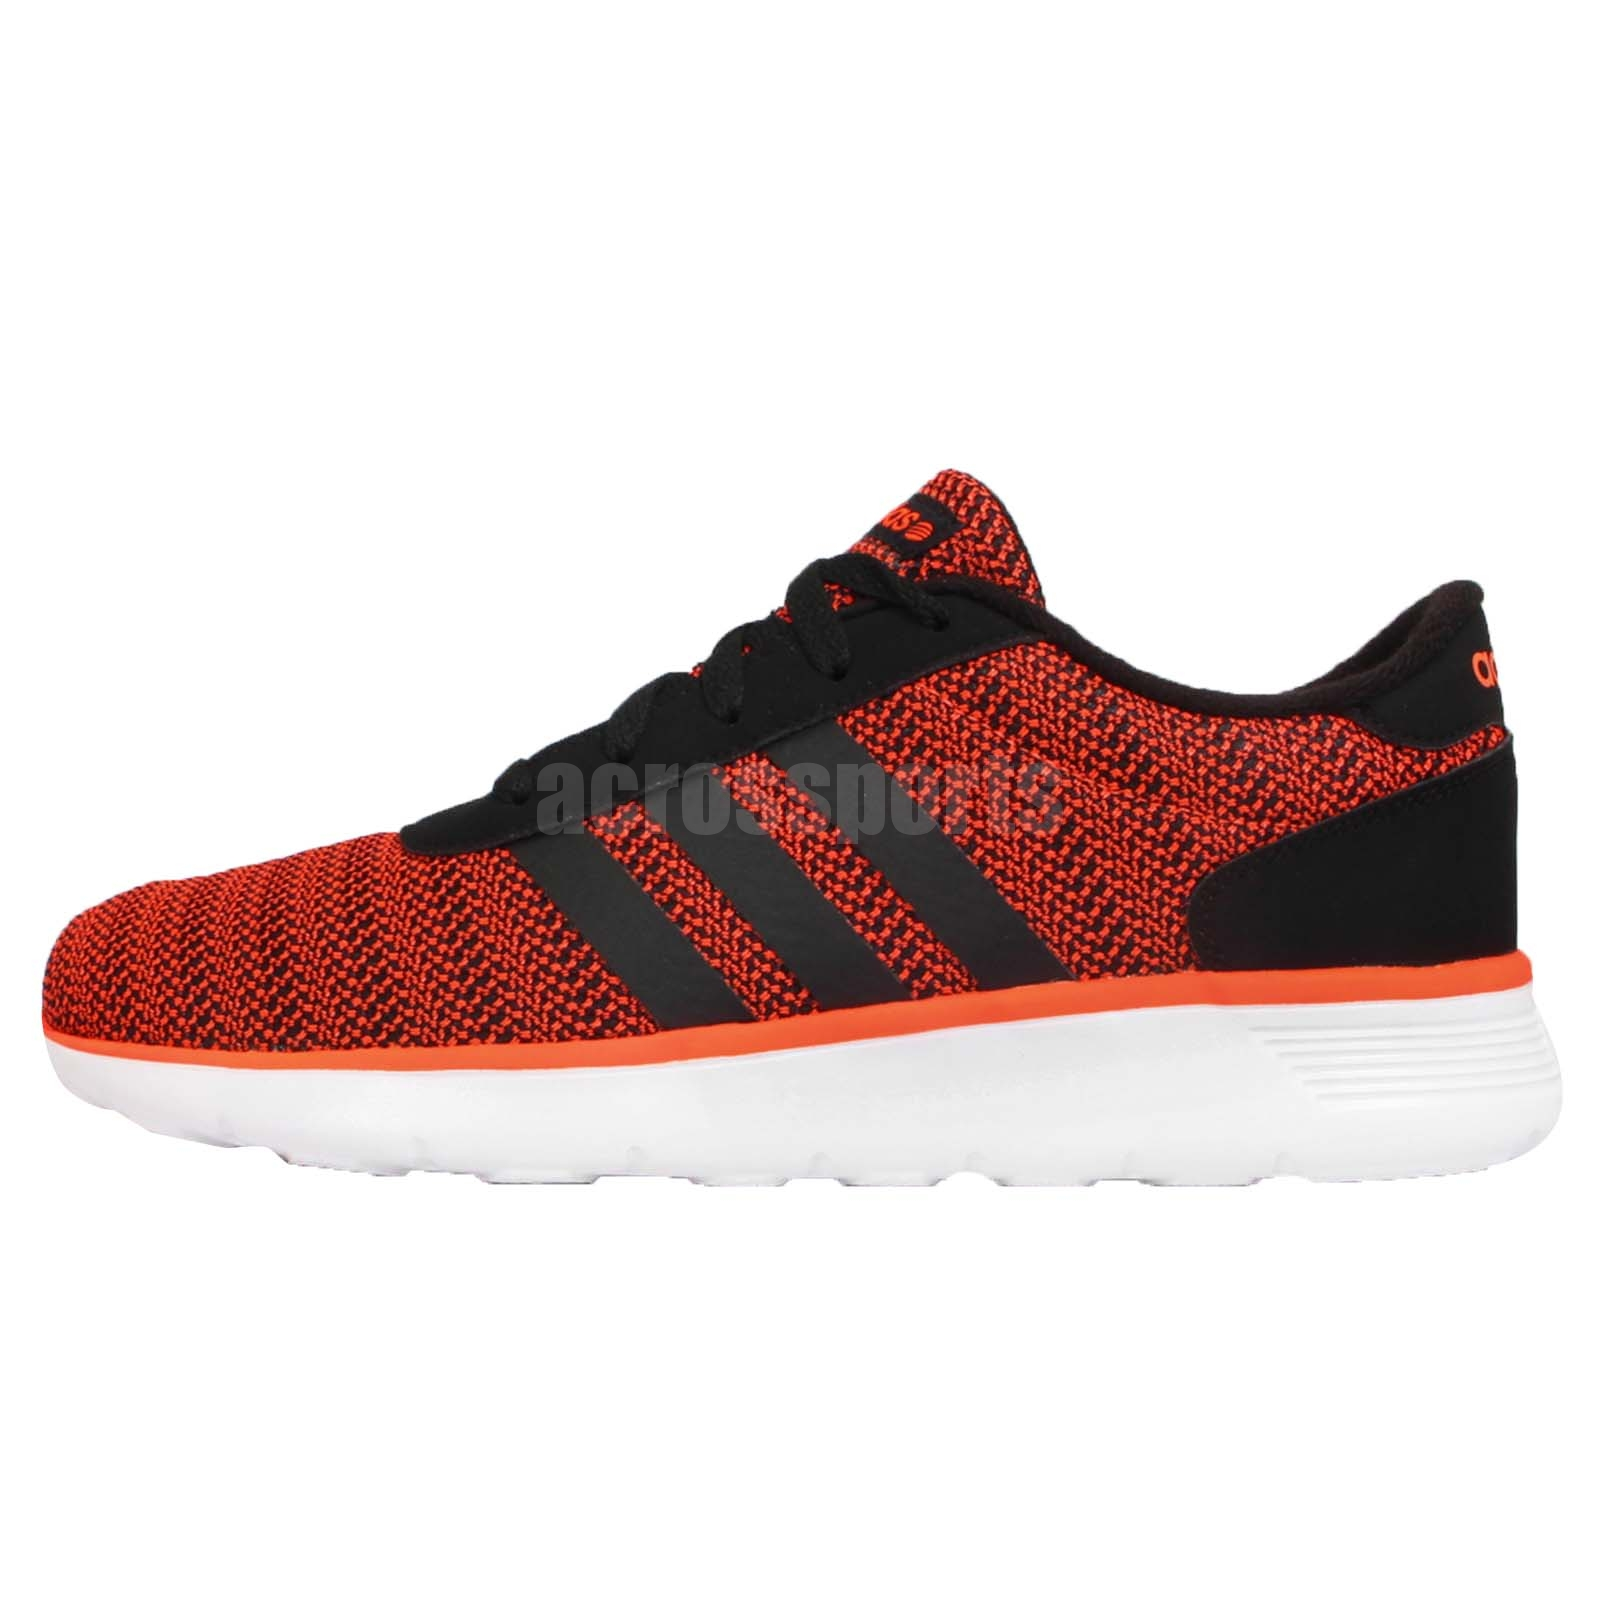 adidas neo label lite racer black red white mens light. Black Bedroom Furniture Sets. Home Design Ideas